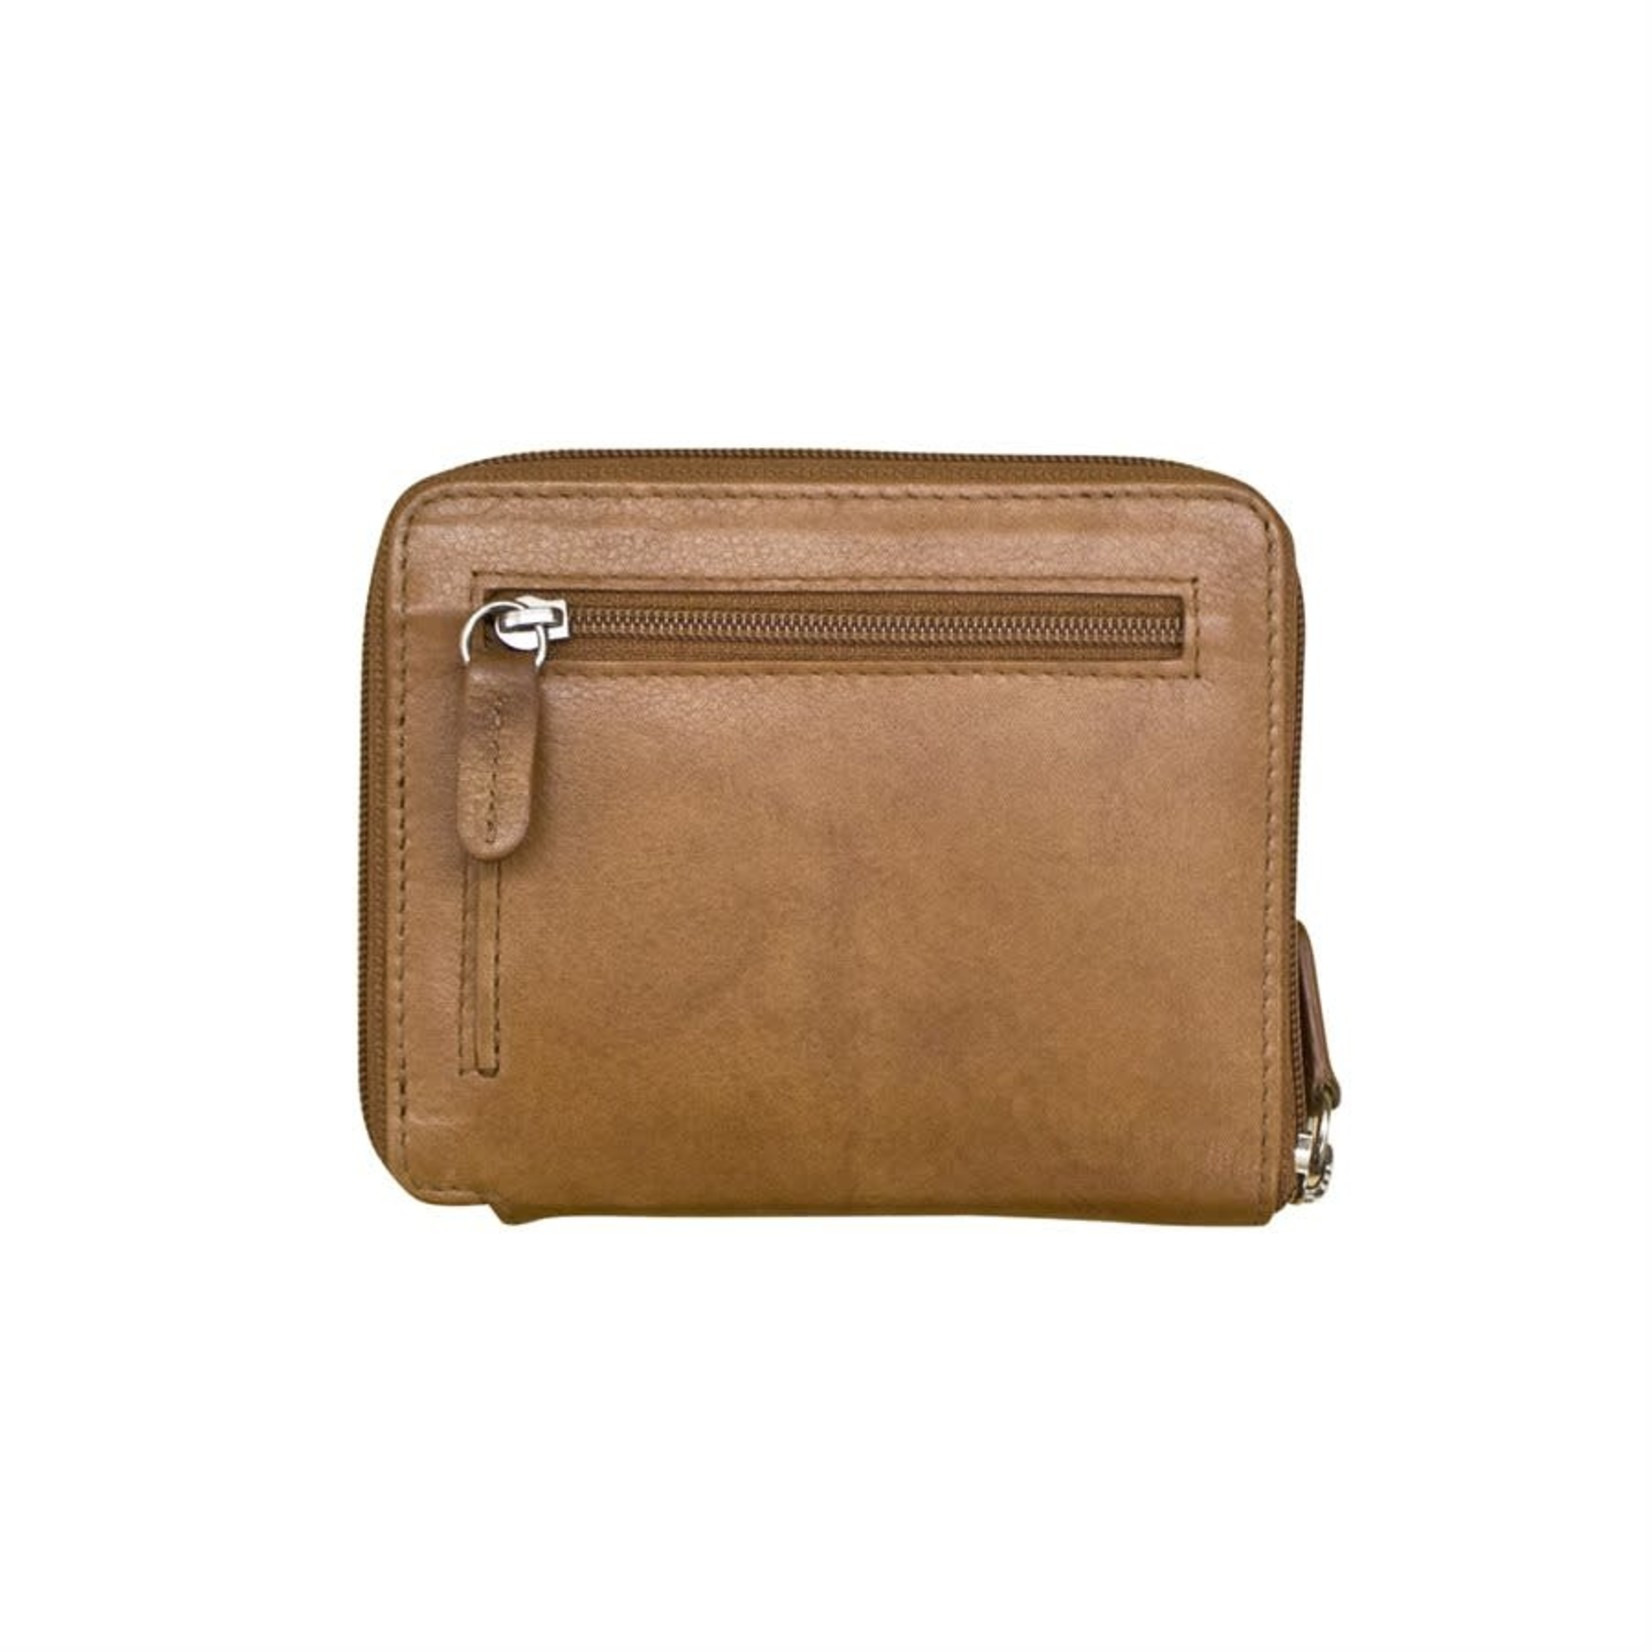 Leather Handbags and Accessories 7859 Antique Saddle - RFID Zip Around Wallet